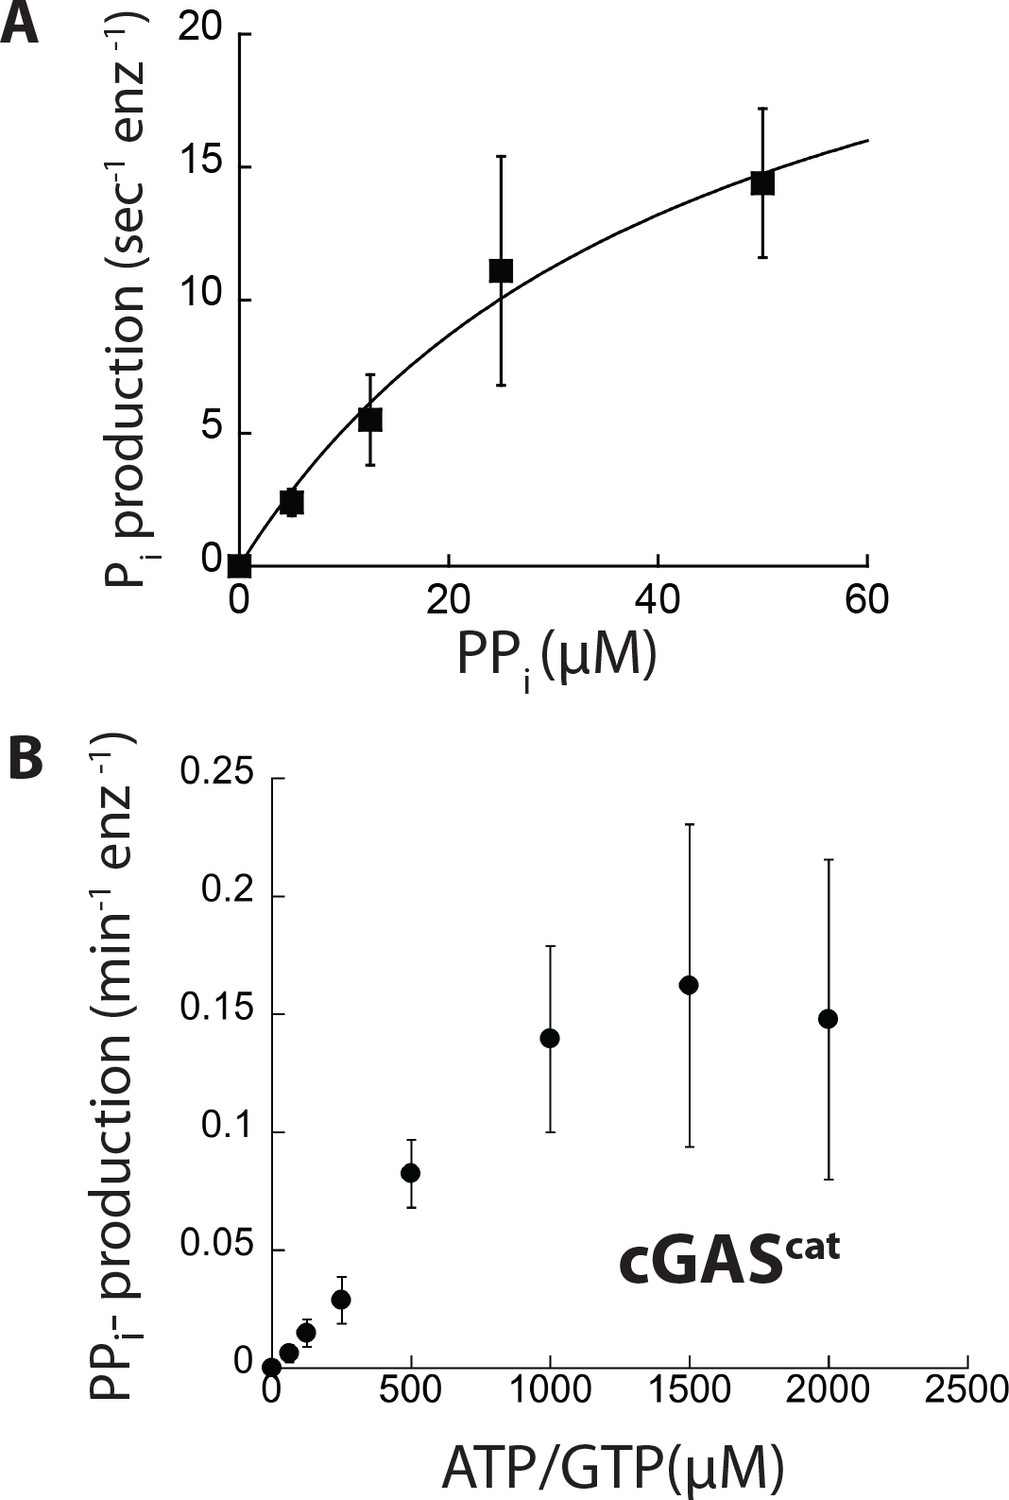 The Allosteric Activation Of Cgas Underpins Its Dynamic Signaling Line Diagram As Well One Electrical Symbols Further 1966 Kinetic Parameters And Ppiase